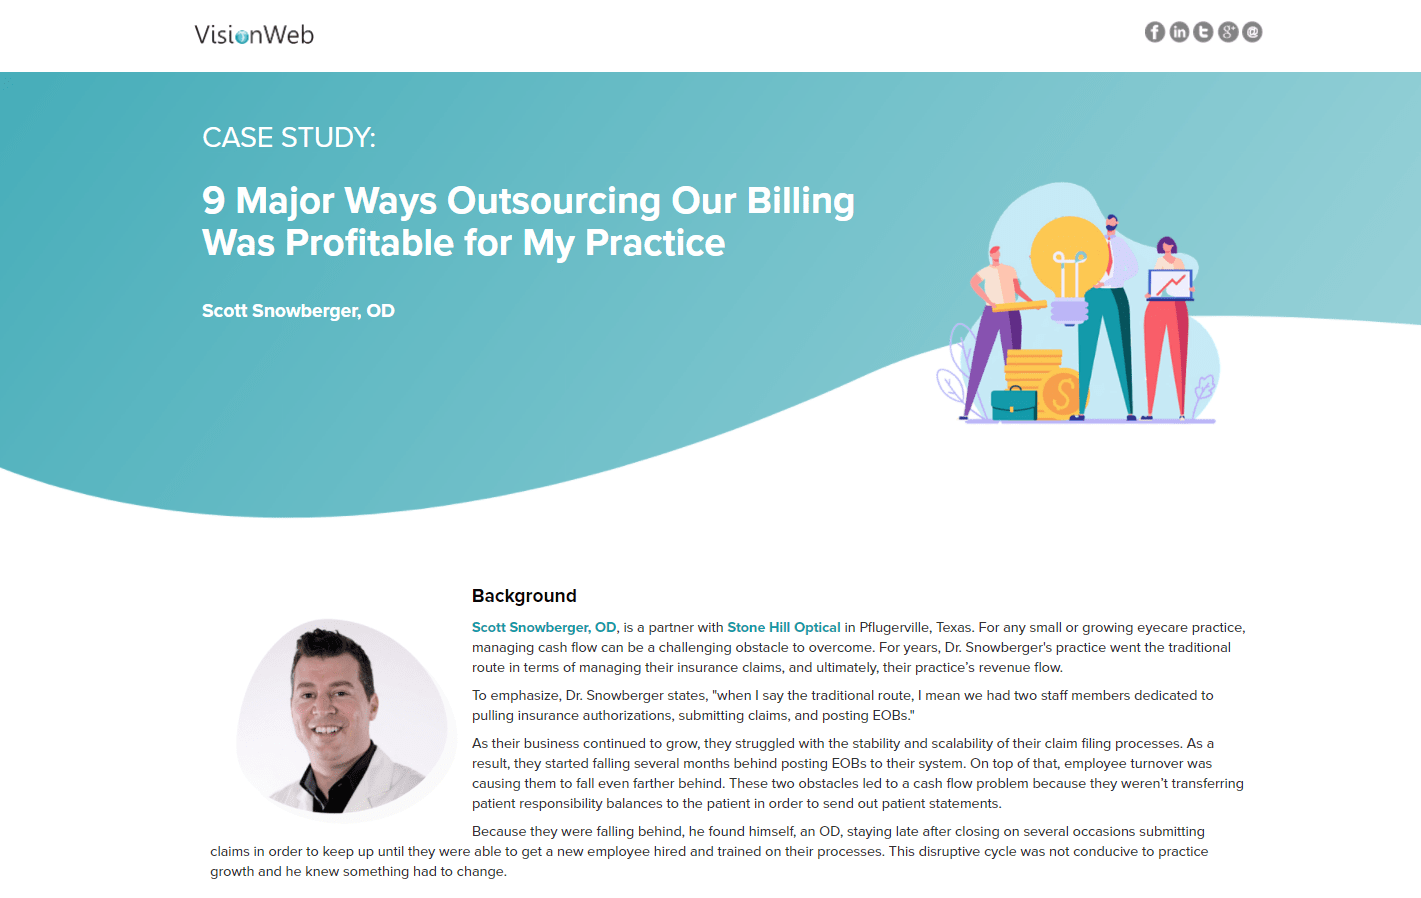 9 Major Ways Outsourcing Our Billing Was Profitable for My Practice